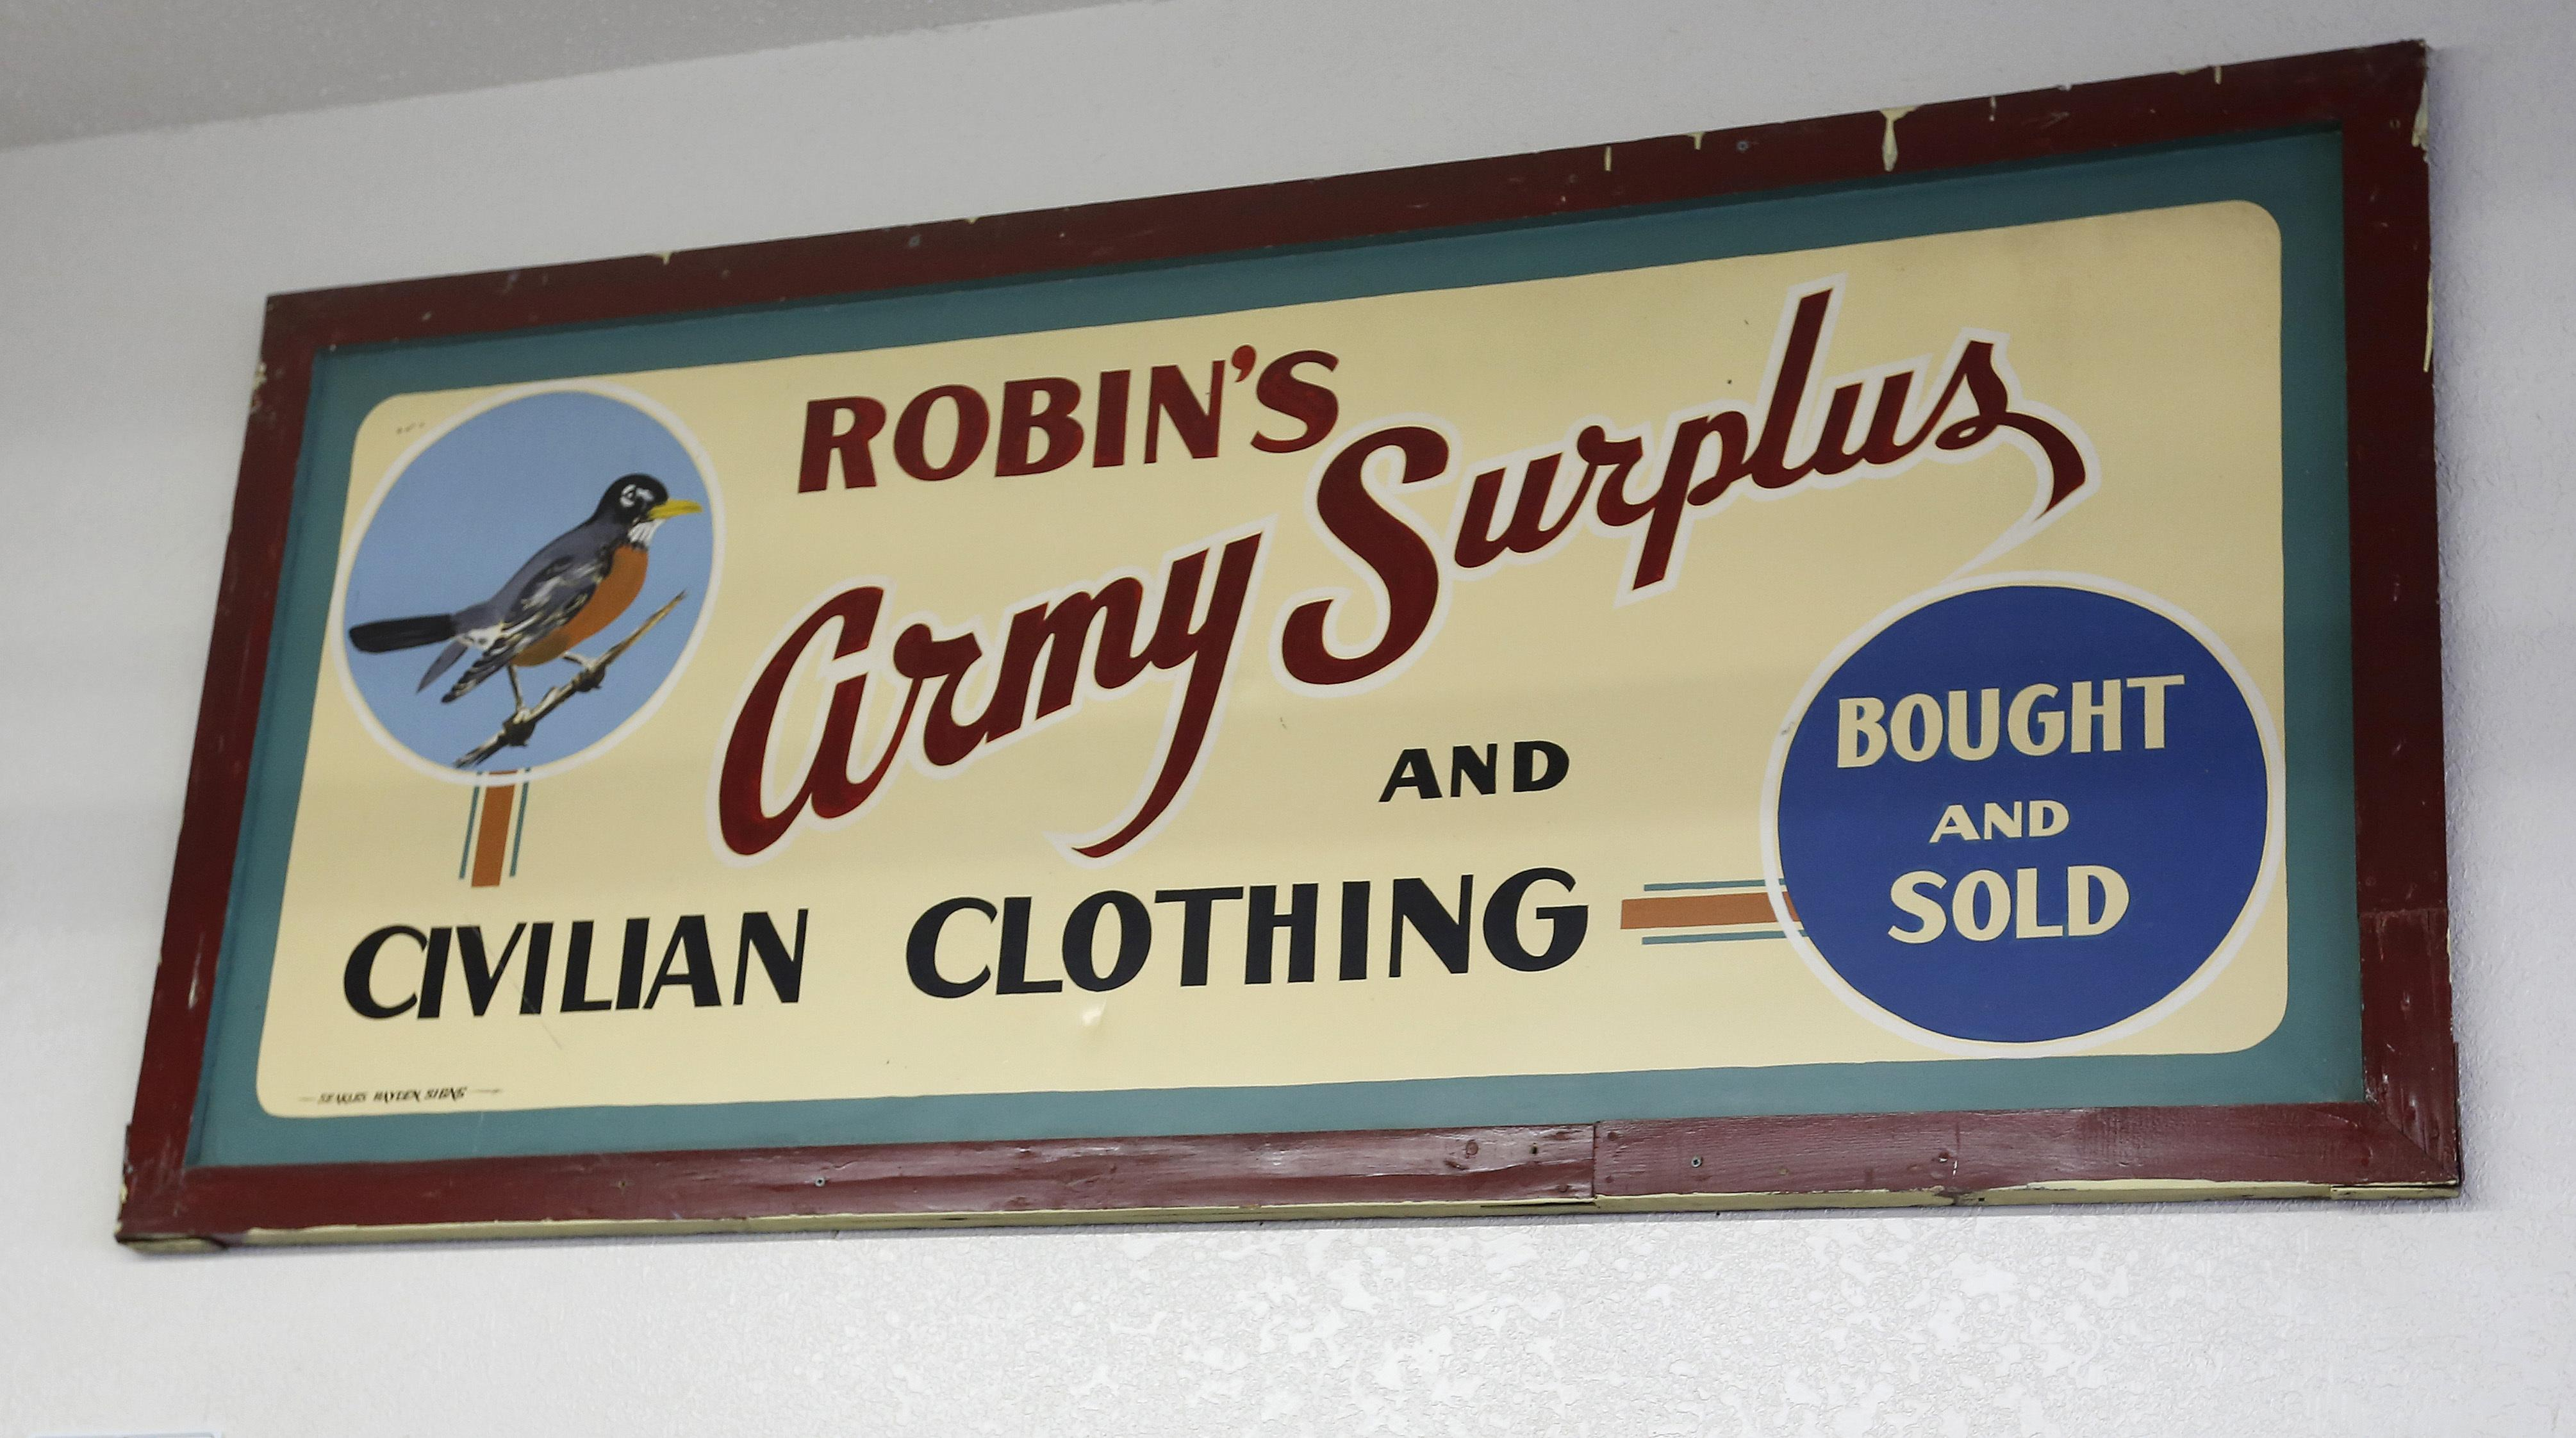 Iowa military surplus store to close after 104 years - Washington Times